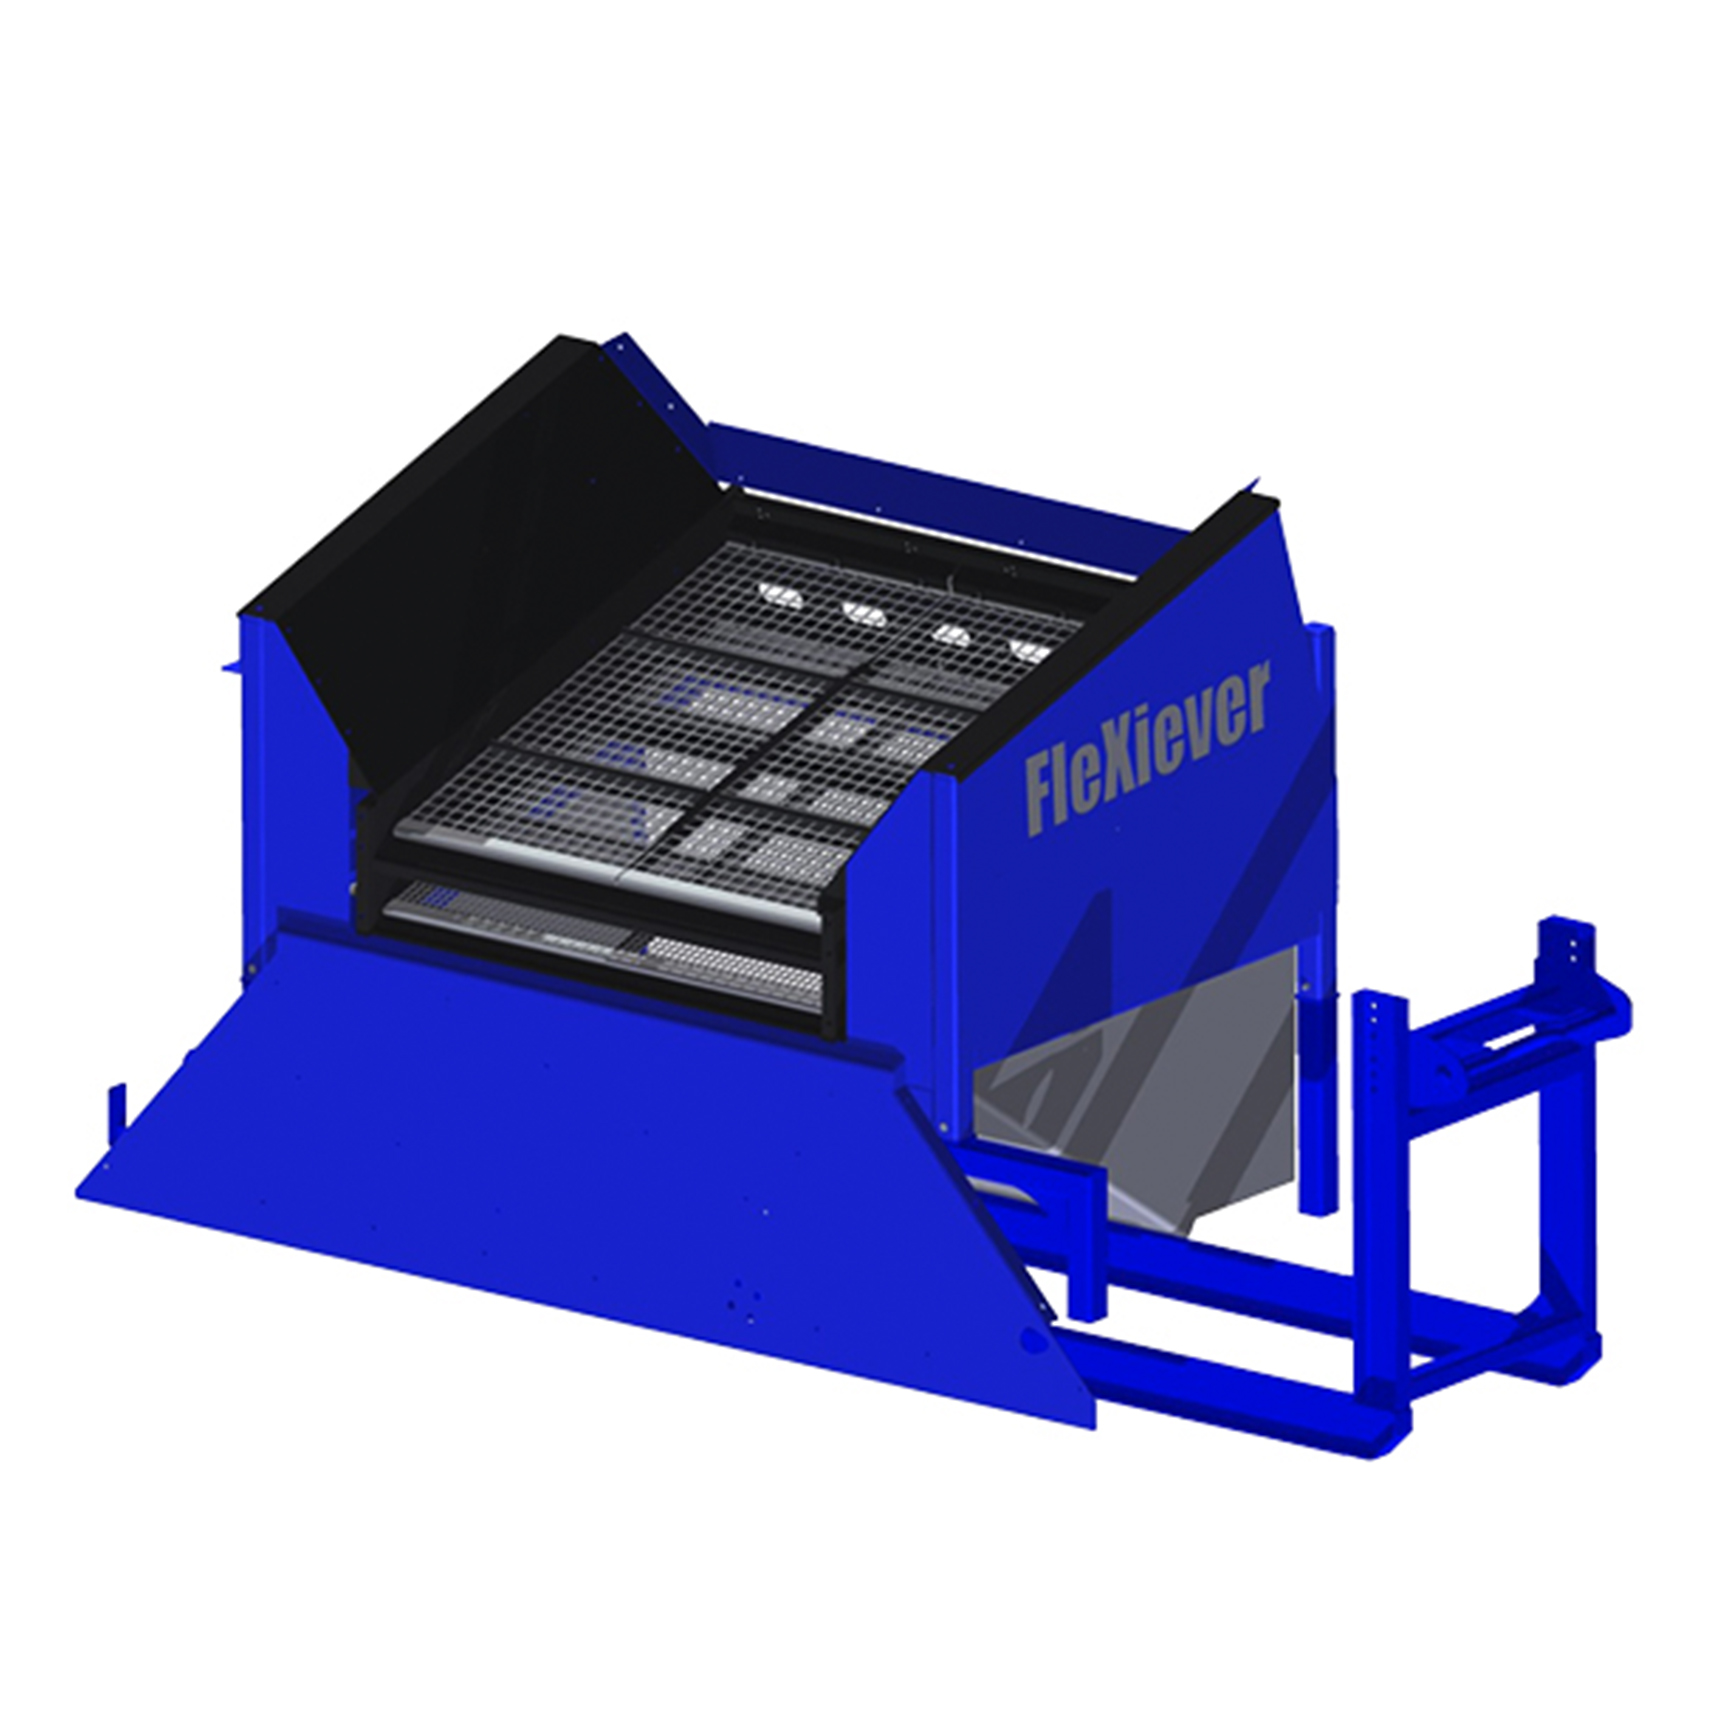 FleXiever Skid Fixed screener